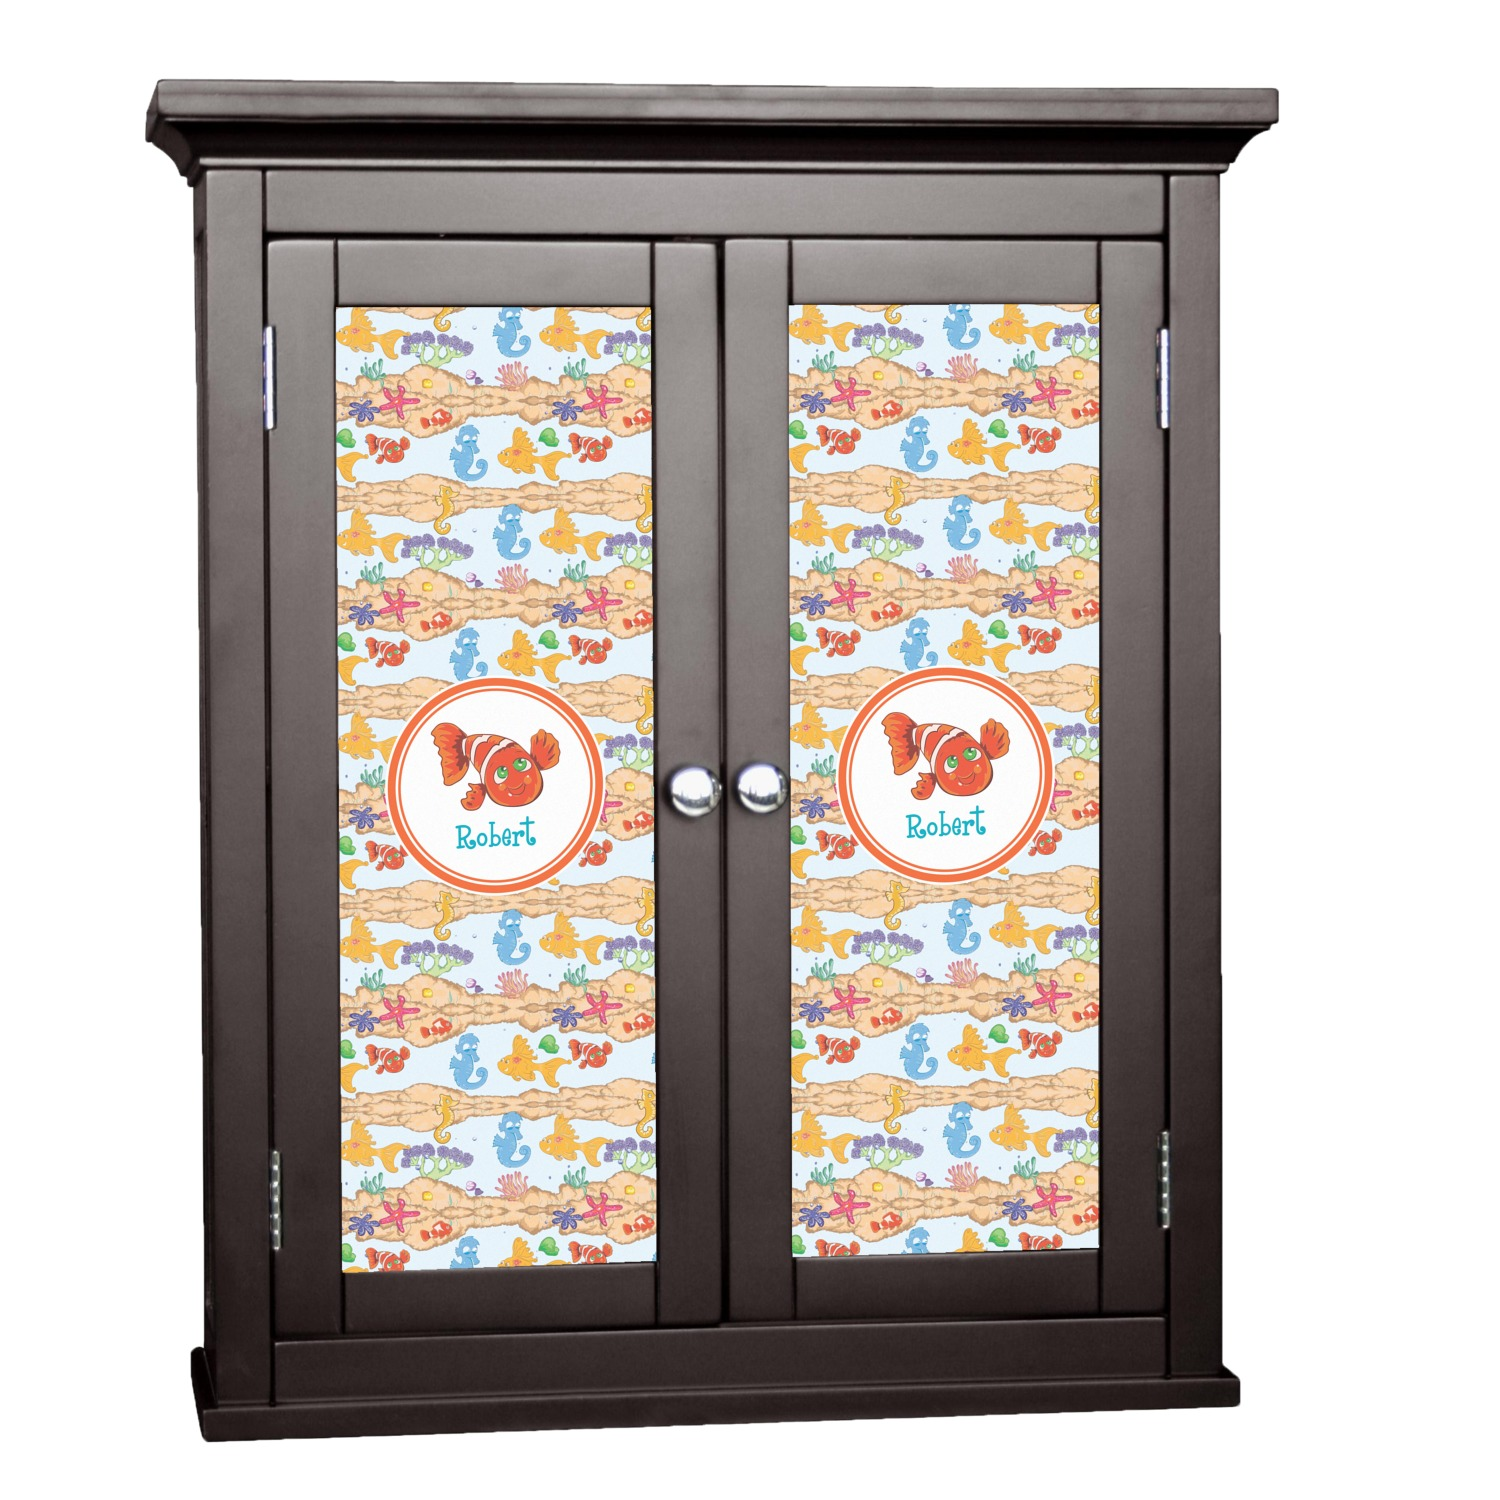 Under The Sea Cabinet Decal Large Personalized Rnk Shops